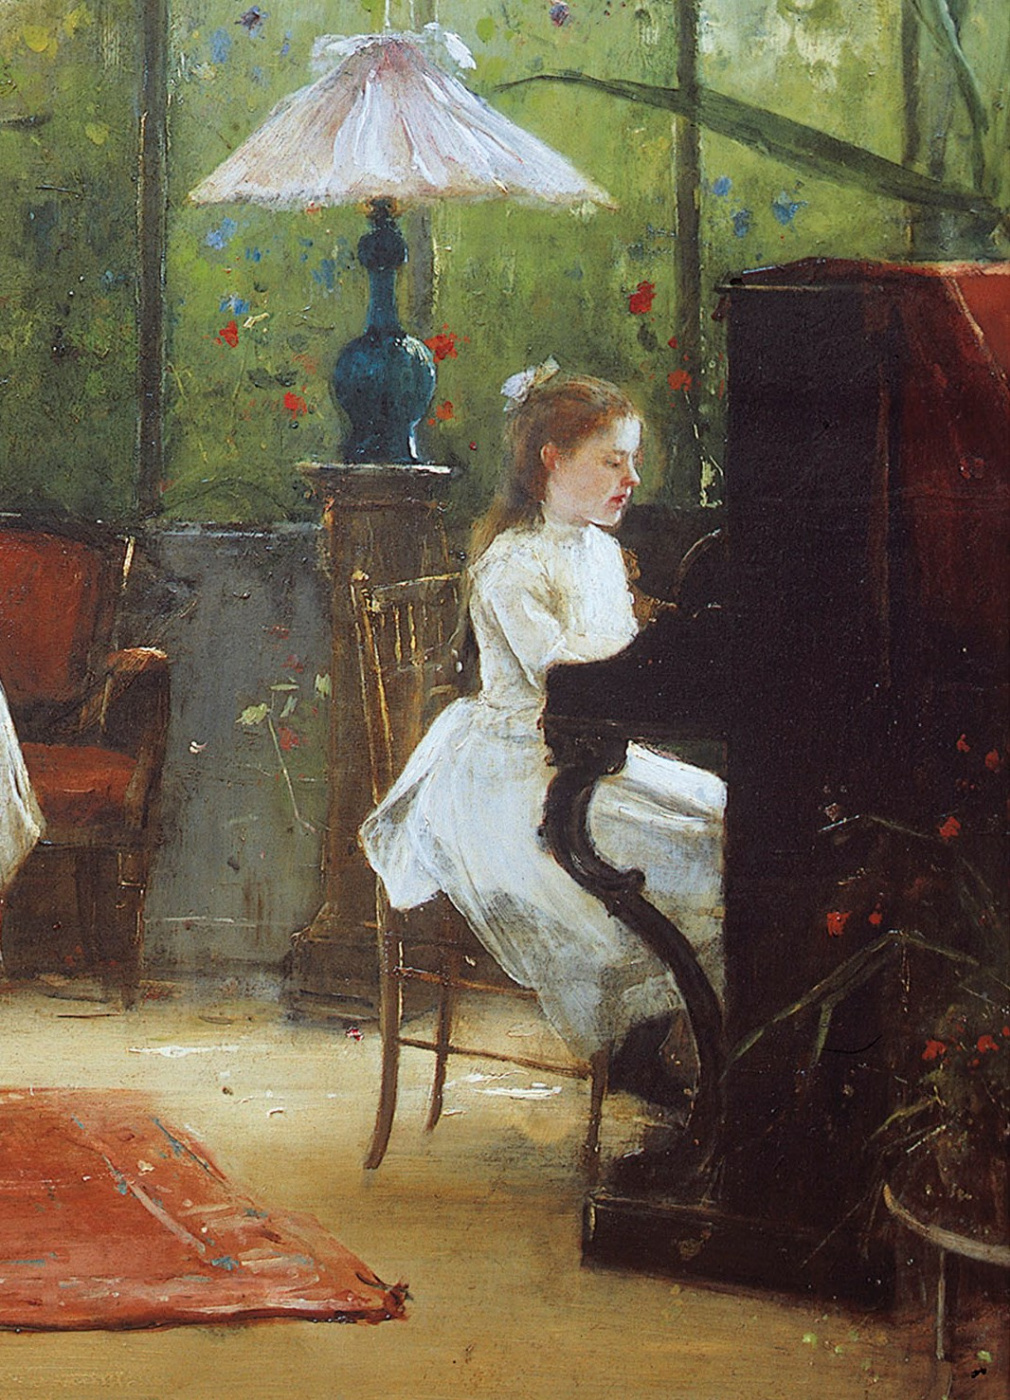 Mihály Munkácsy. Interior with girl at the piano. Fragment. Playing music girl